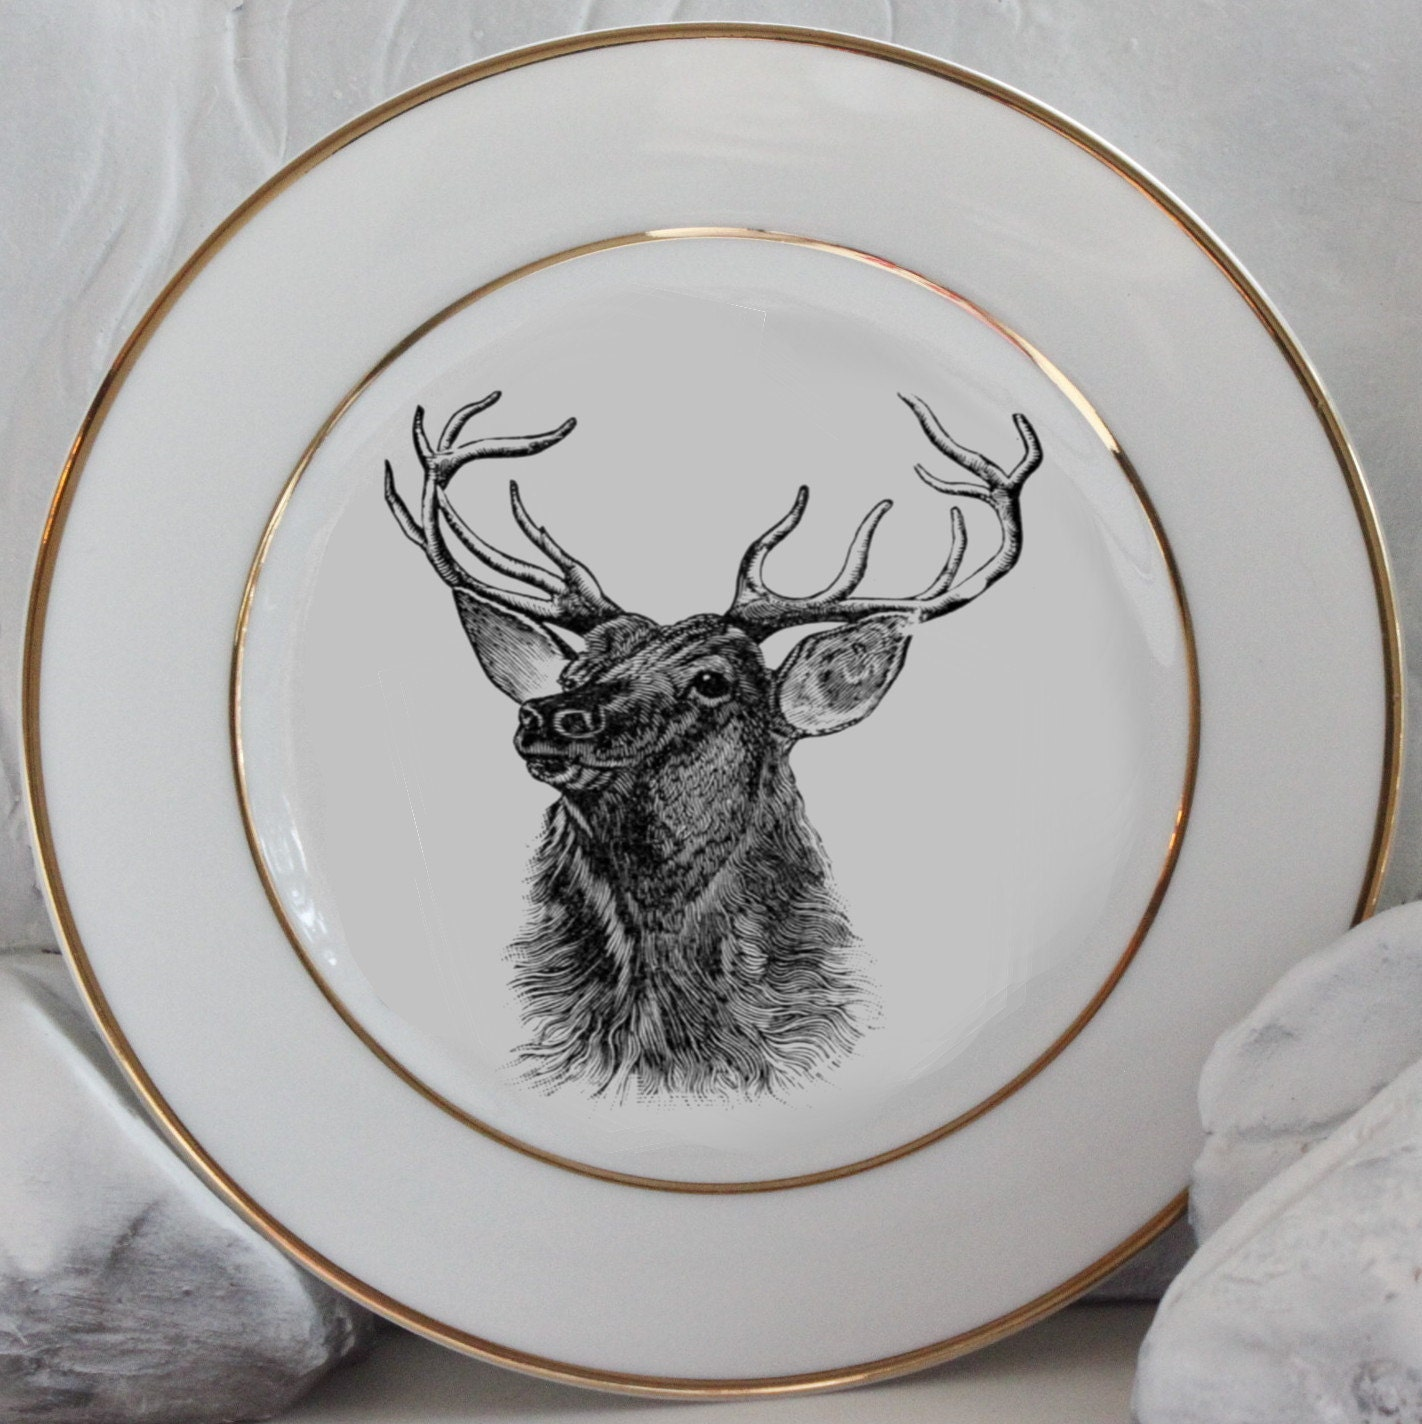 & Gold Deer / Reindeer Plates Dinnerware Dishes Customized